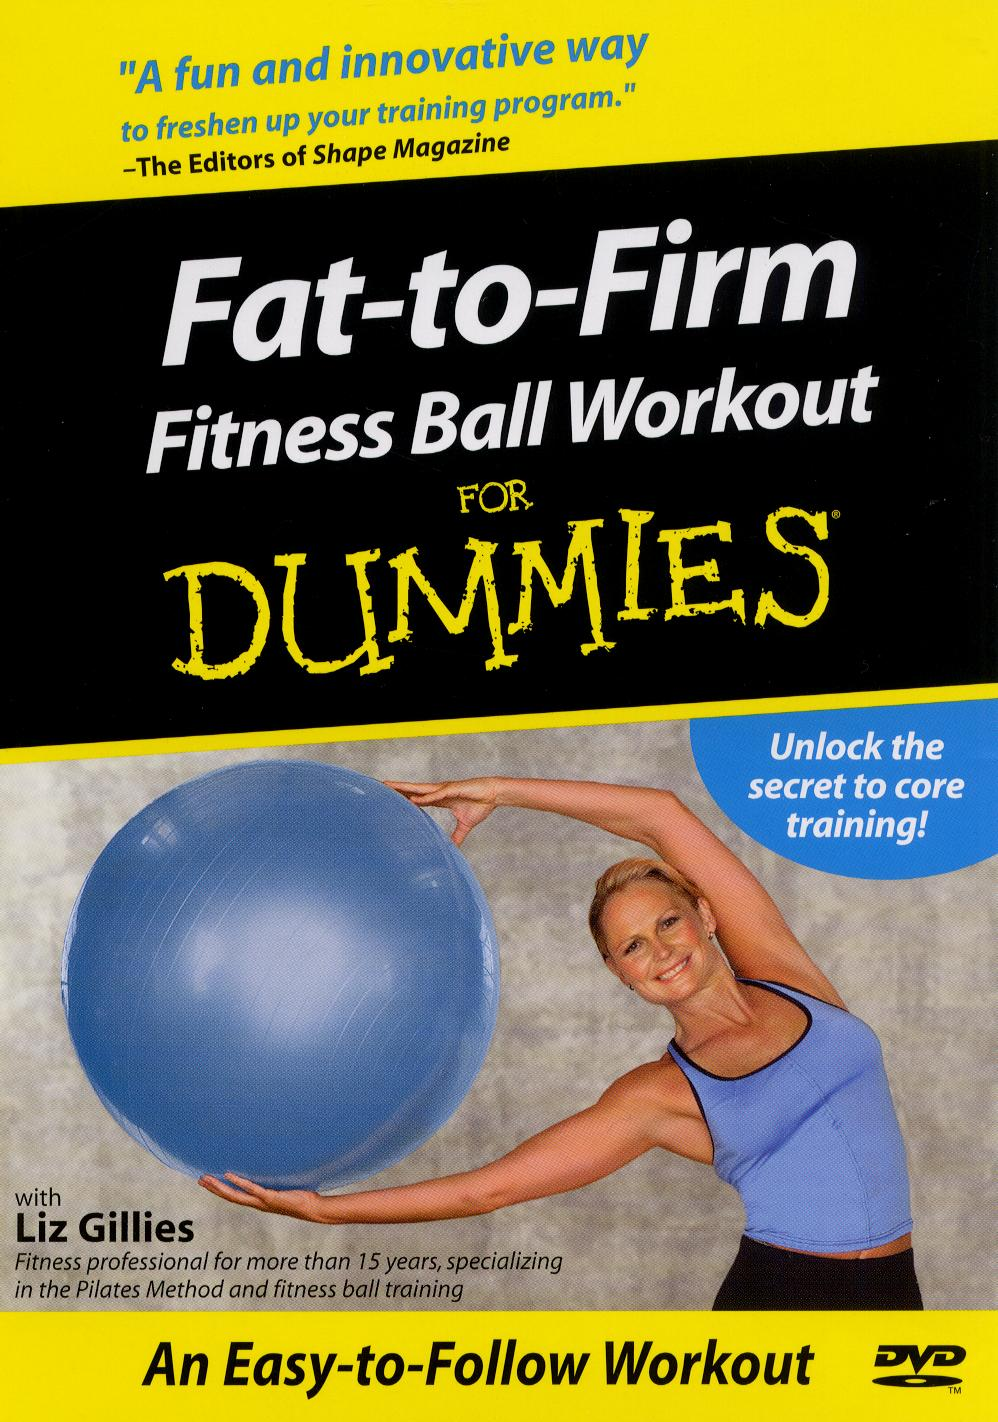 Fat-To-Firm Fitness Ball Workout for Dummies